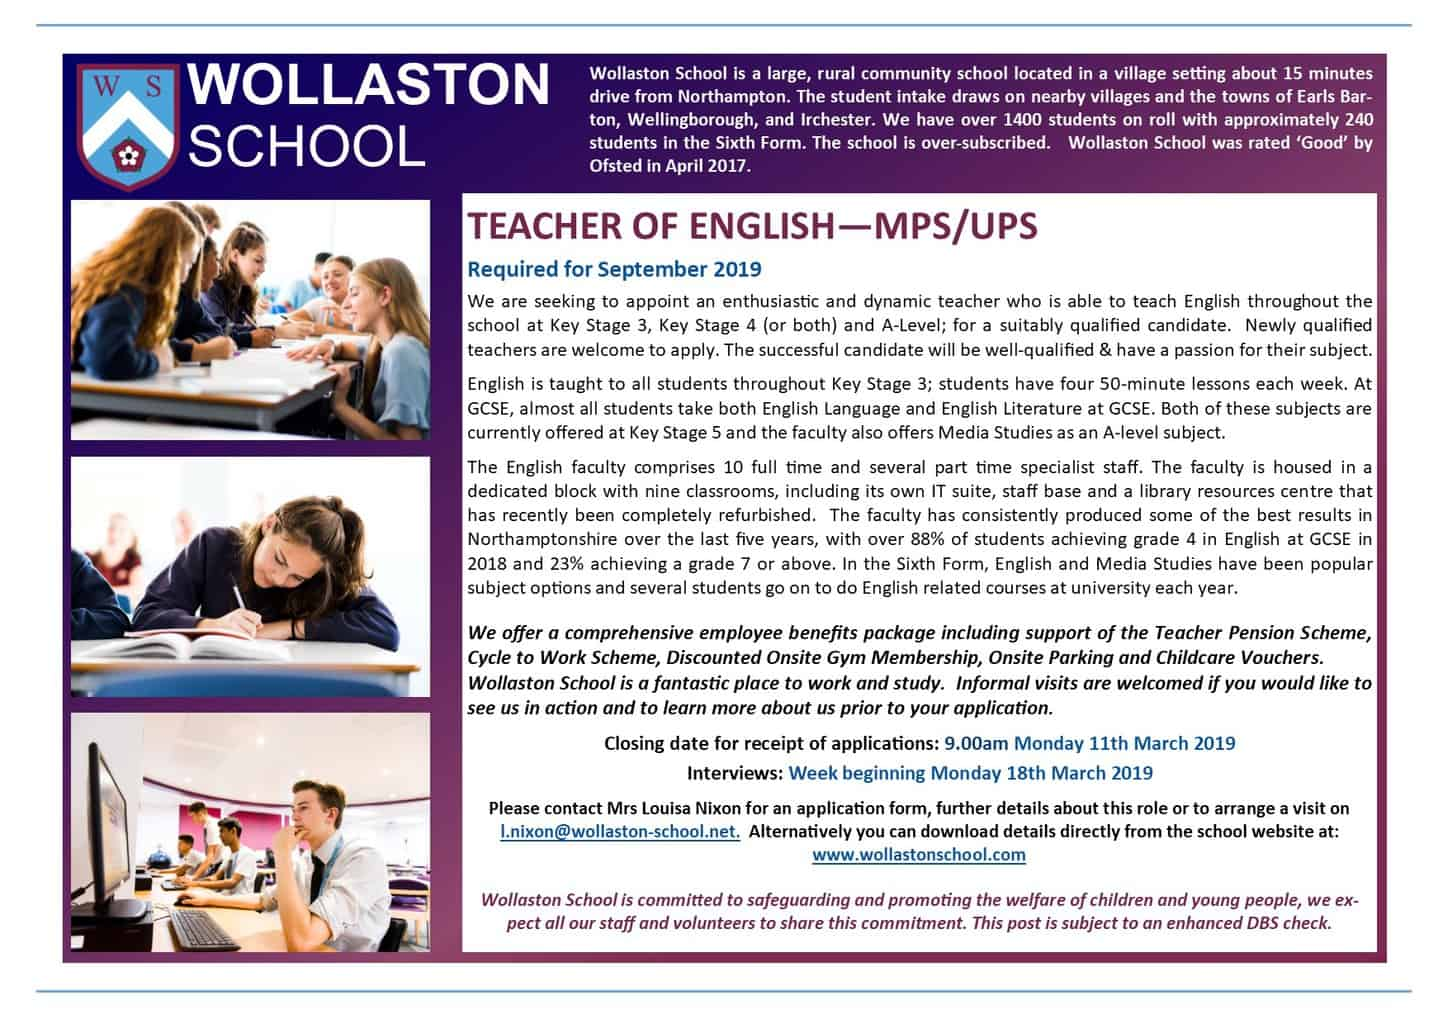 Teacher of English - Jan 2019